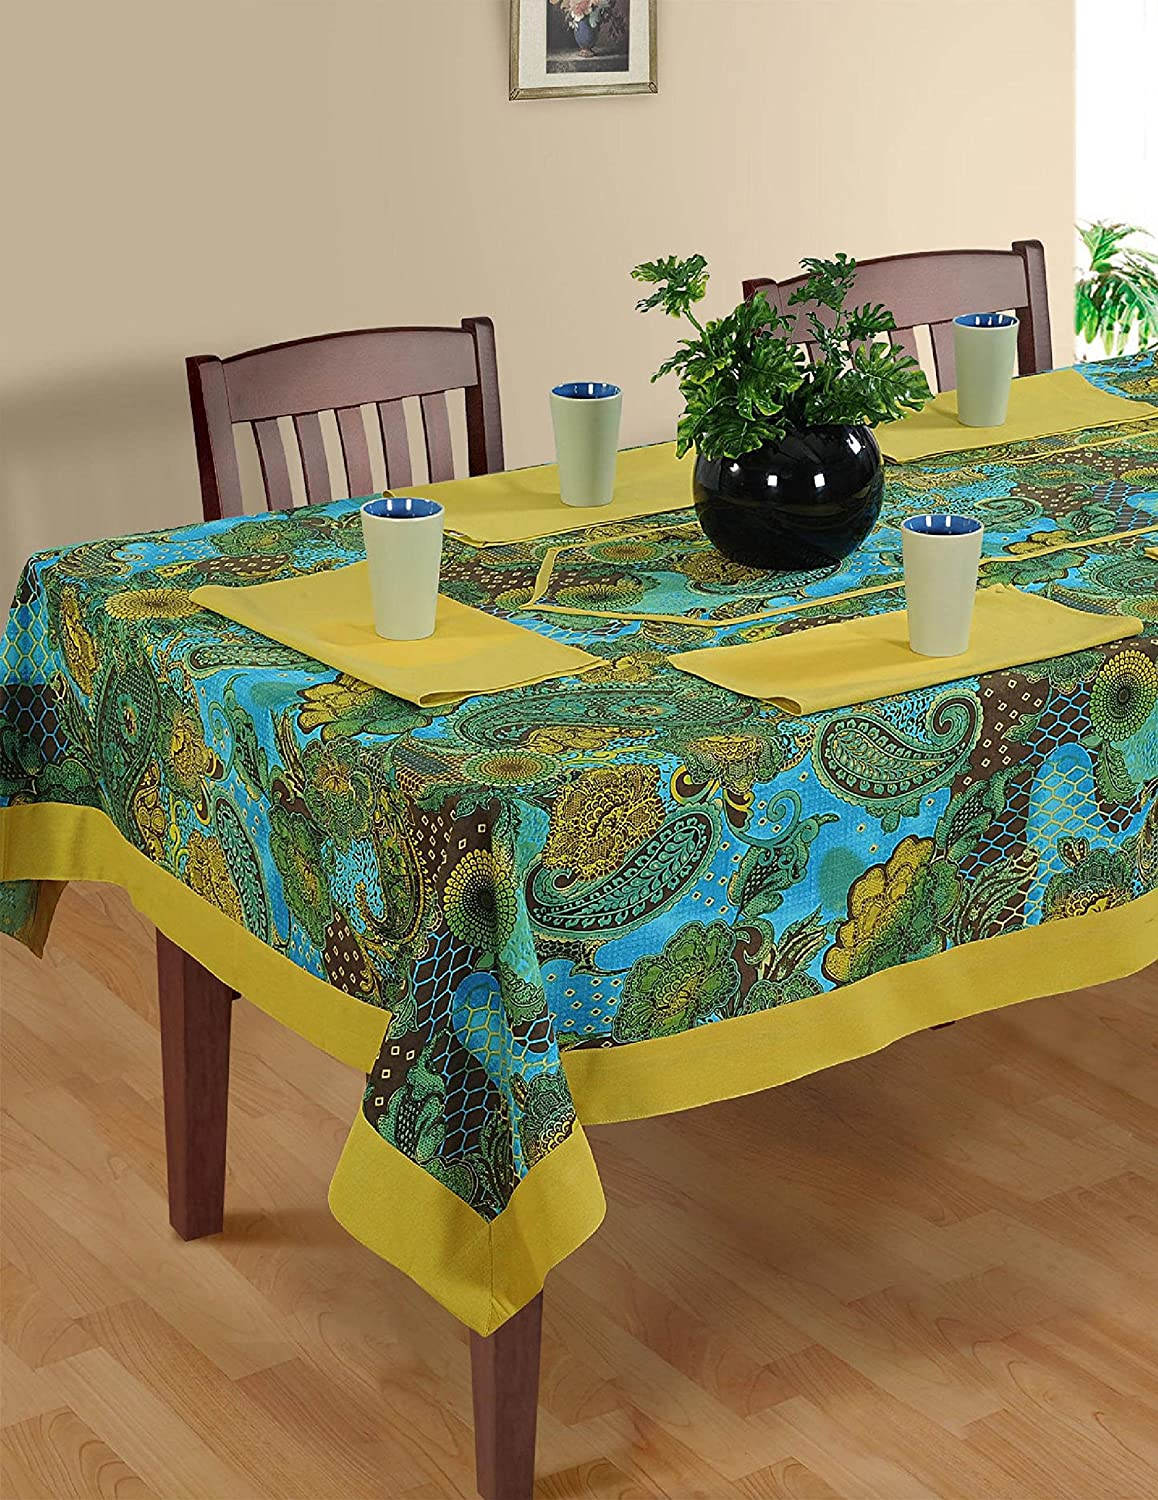 Amazon.com: ShalinIndia Colorful Multicolor Cotton Spring Floral Tablecloths  Tables 54 X 54 Inches, Gold Metallic Border: Kitchen U0026 Dining